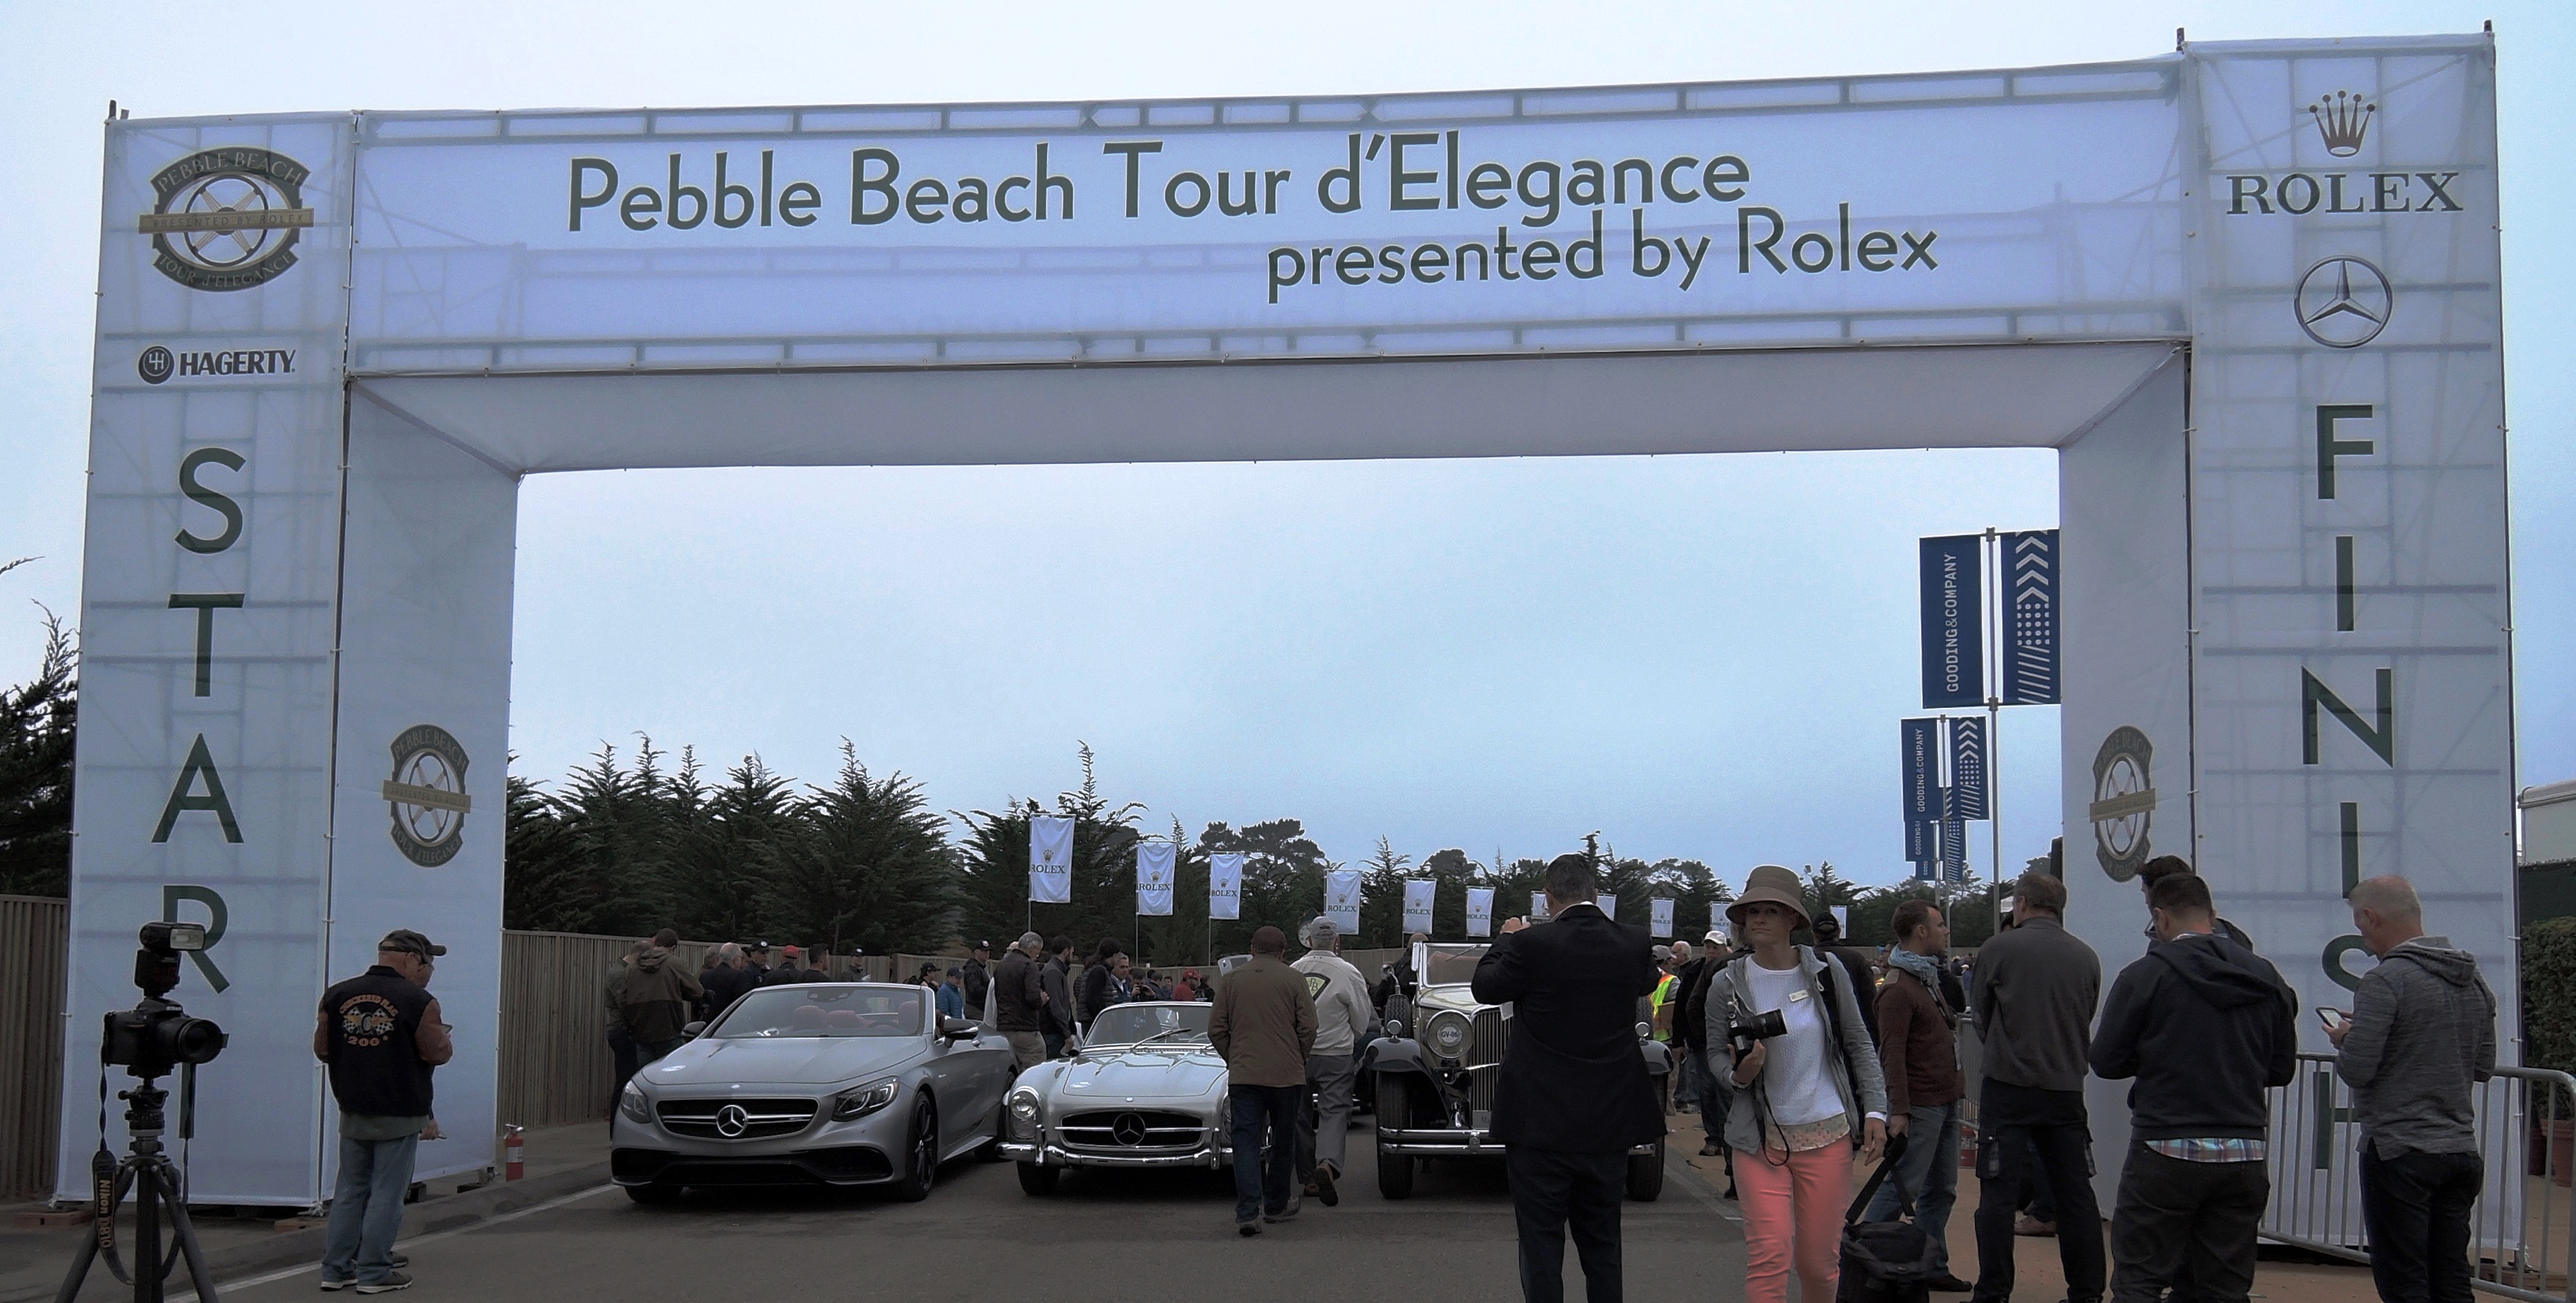 Pebble Beach Tour d'Elegance - Monterey Car Week 2016